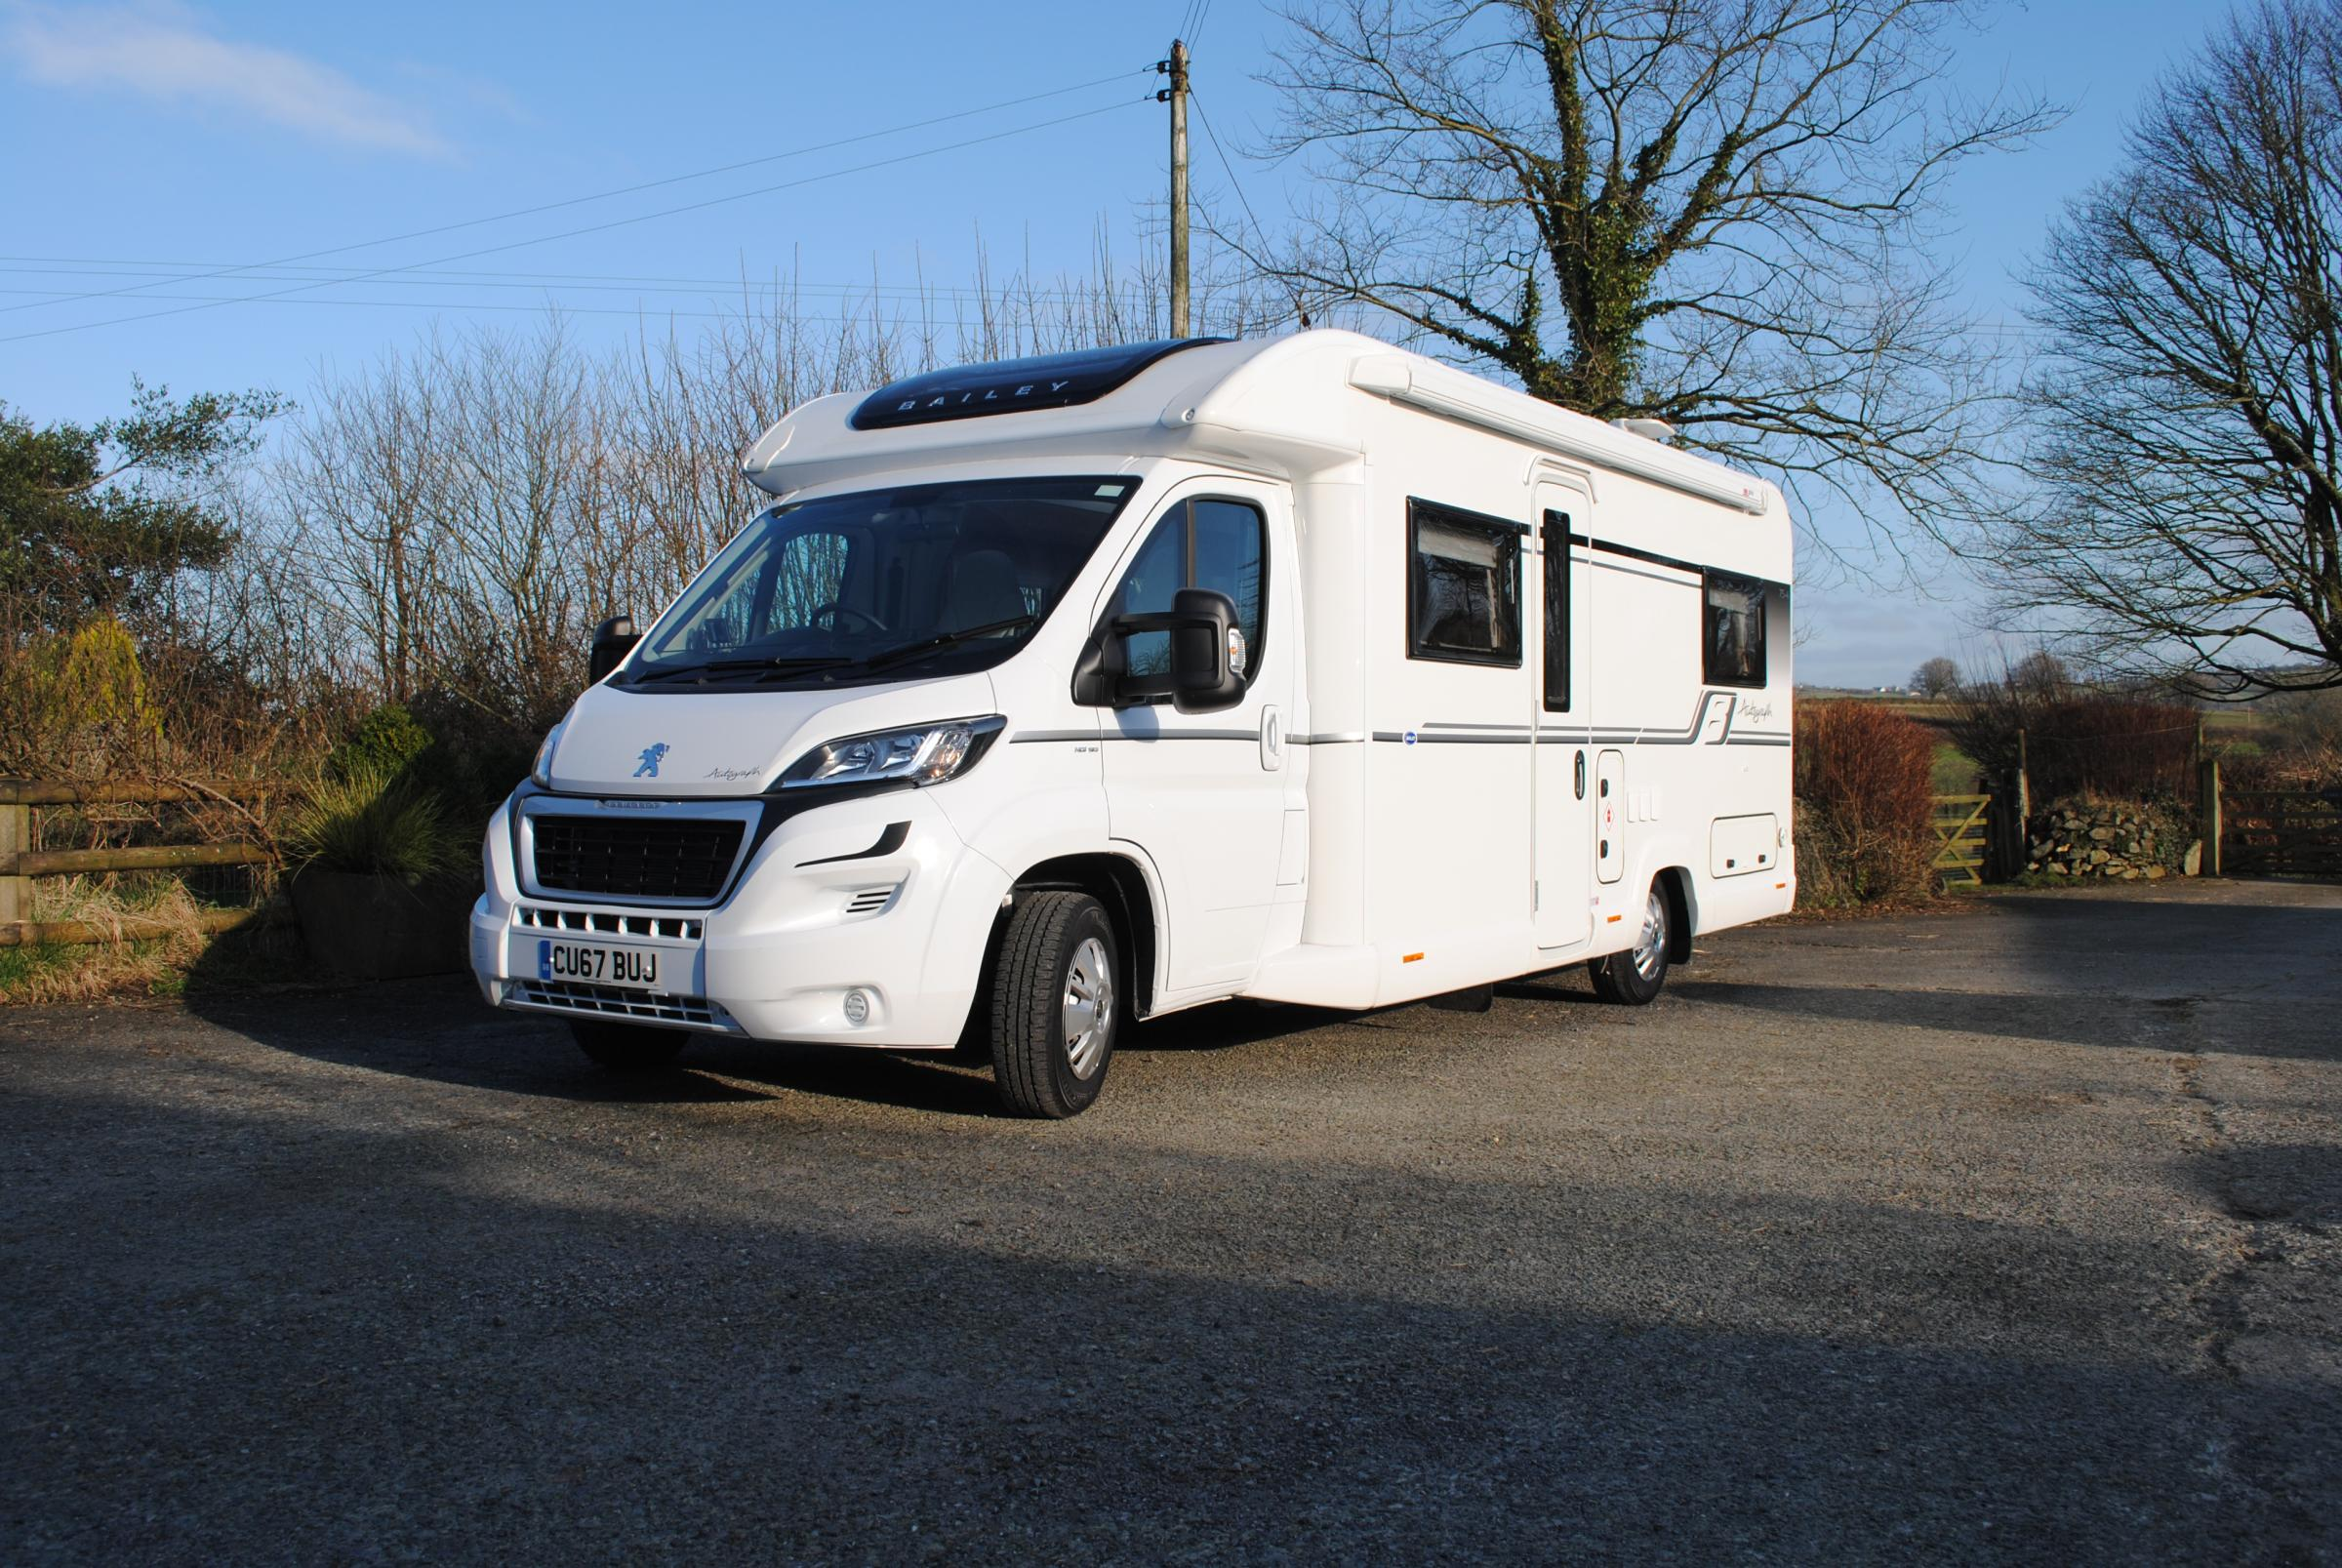 Motorhome Hire Open Day